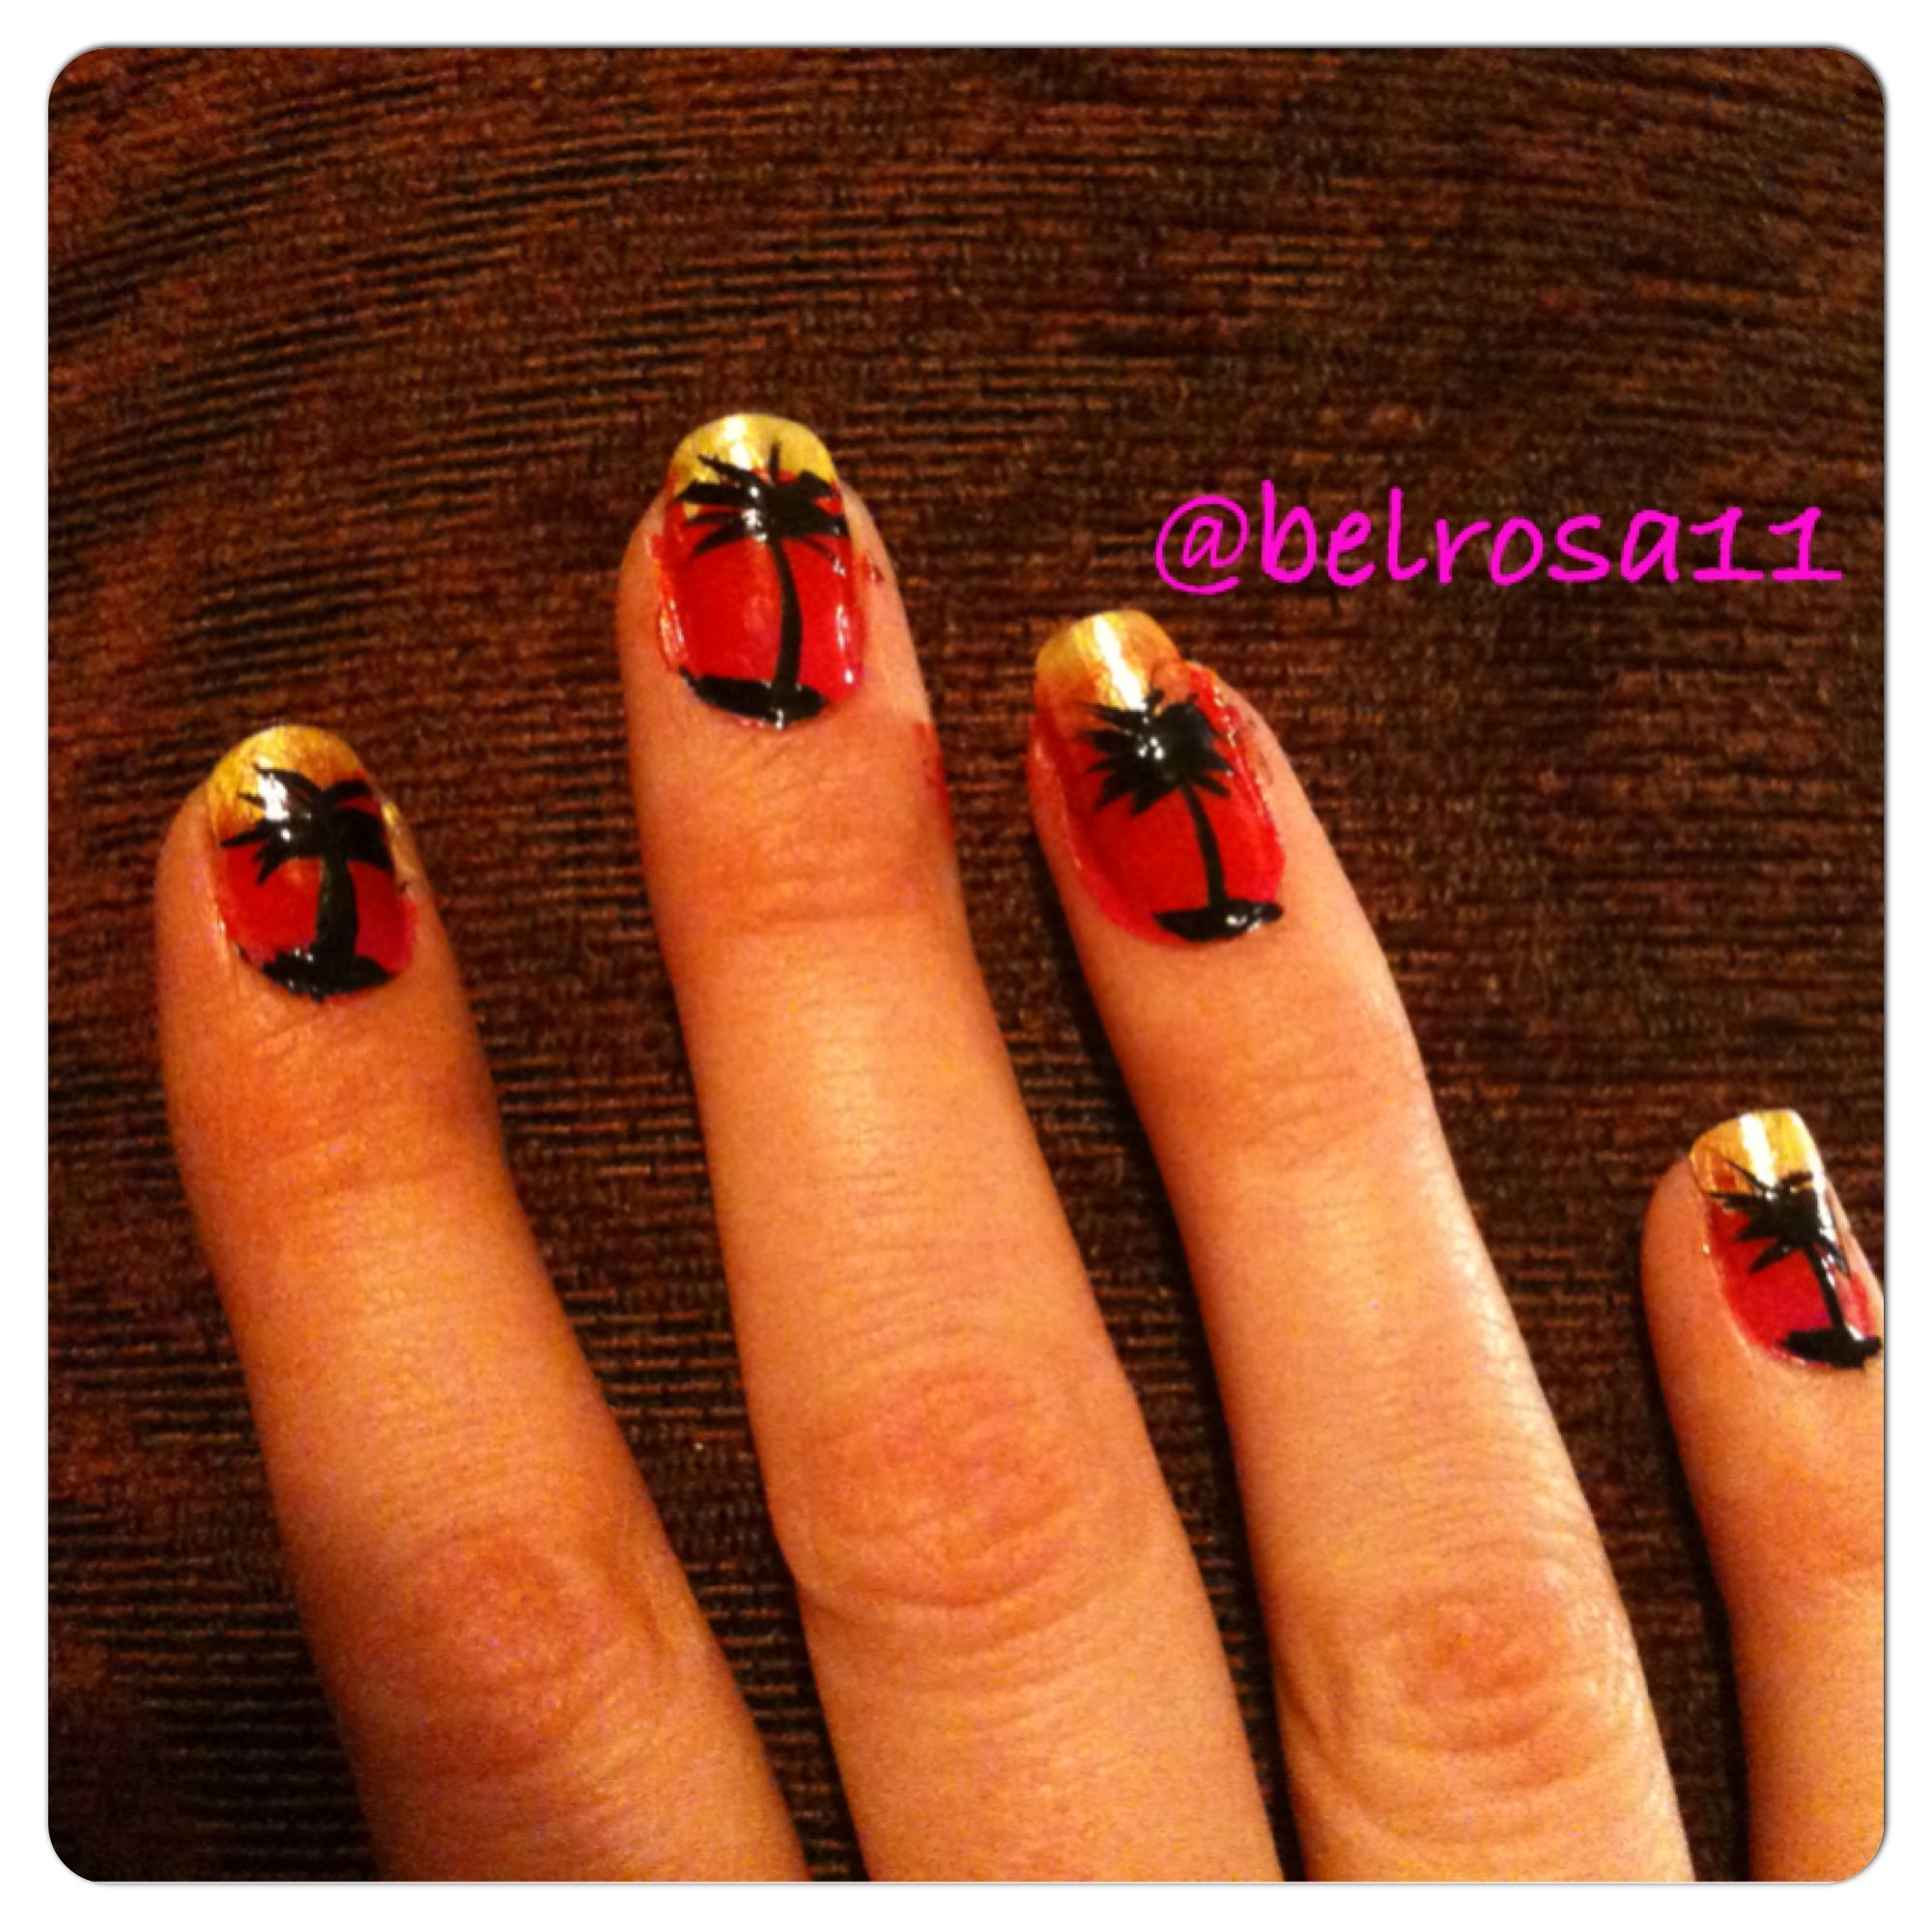 Red yellow black sunset palm tree nails | hands beauty | Pinterest